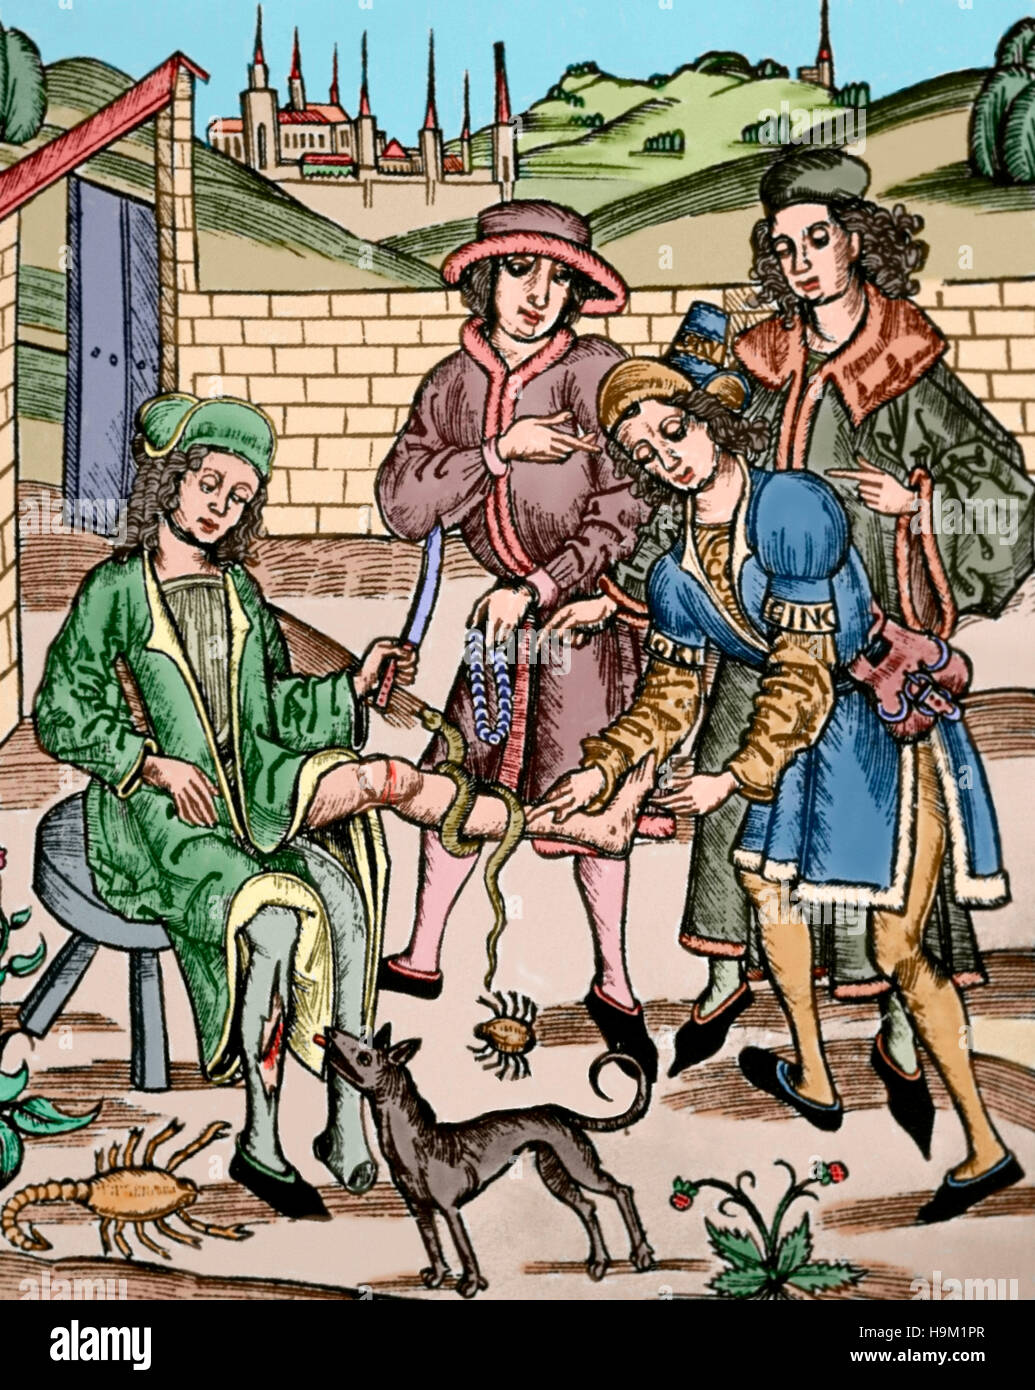 Medicine. 15th century. A man is cured due to the injures caused by dangerous animals: a rabid dog, an scorpion - Stock Image